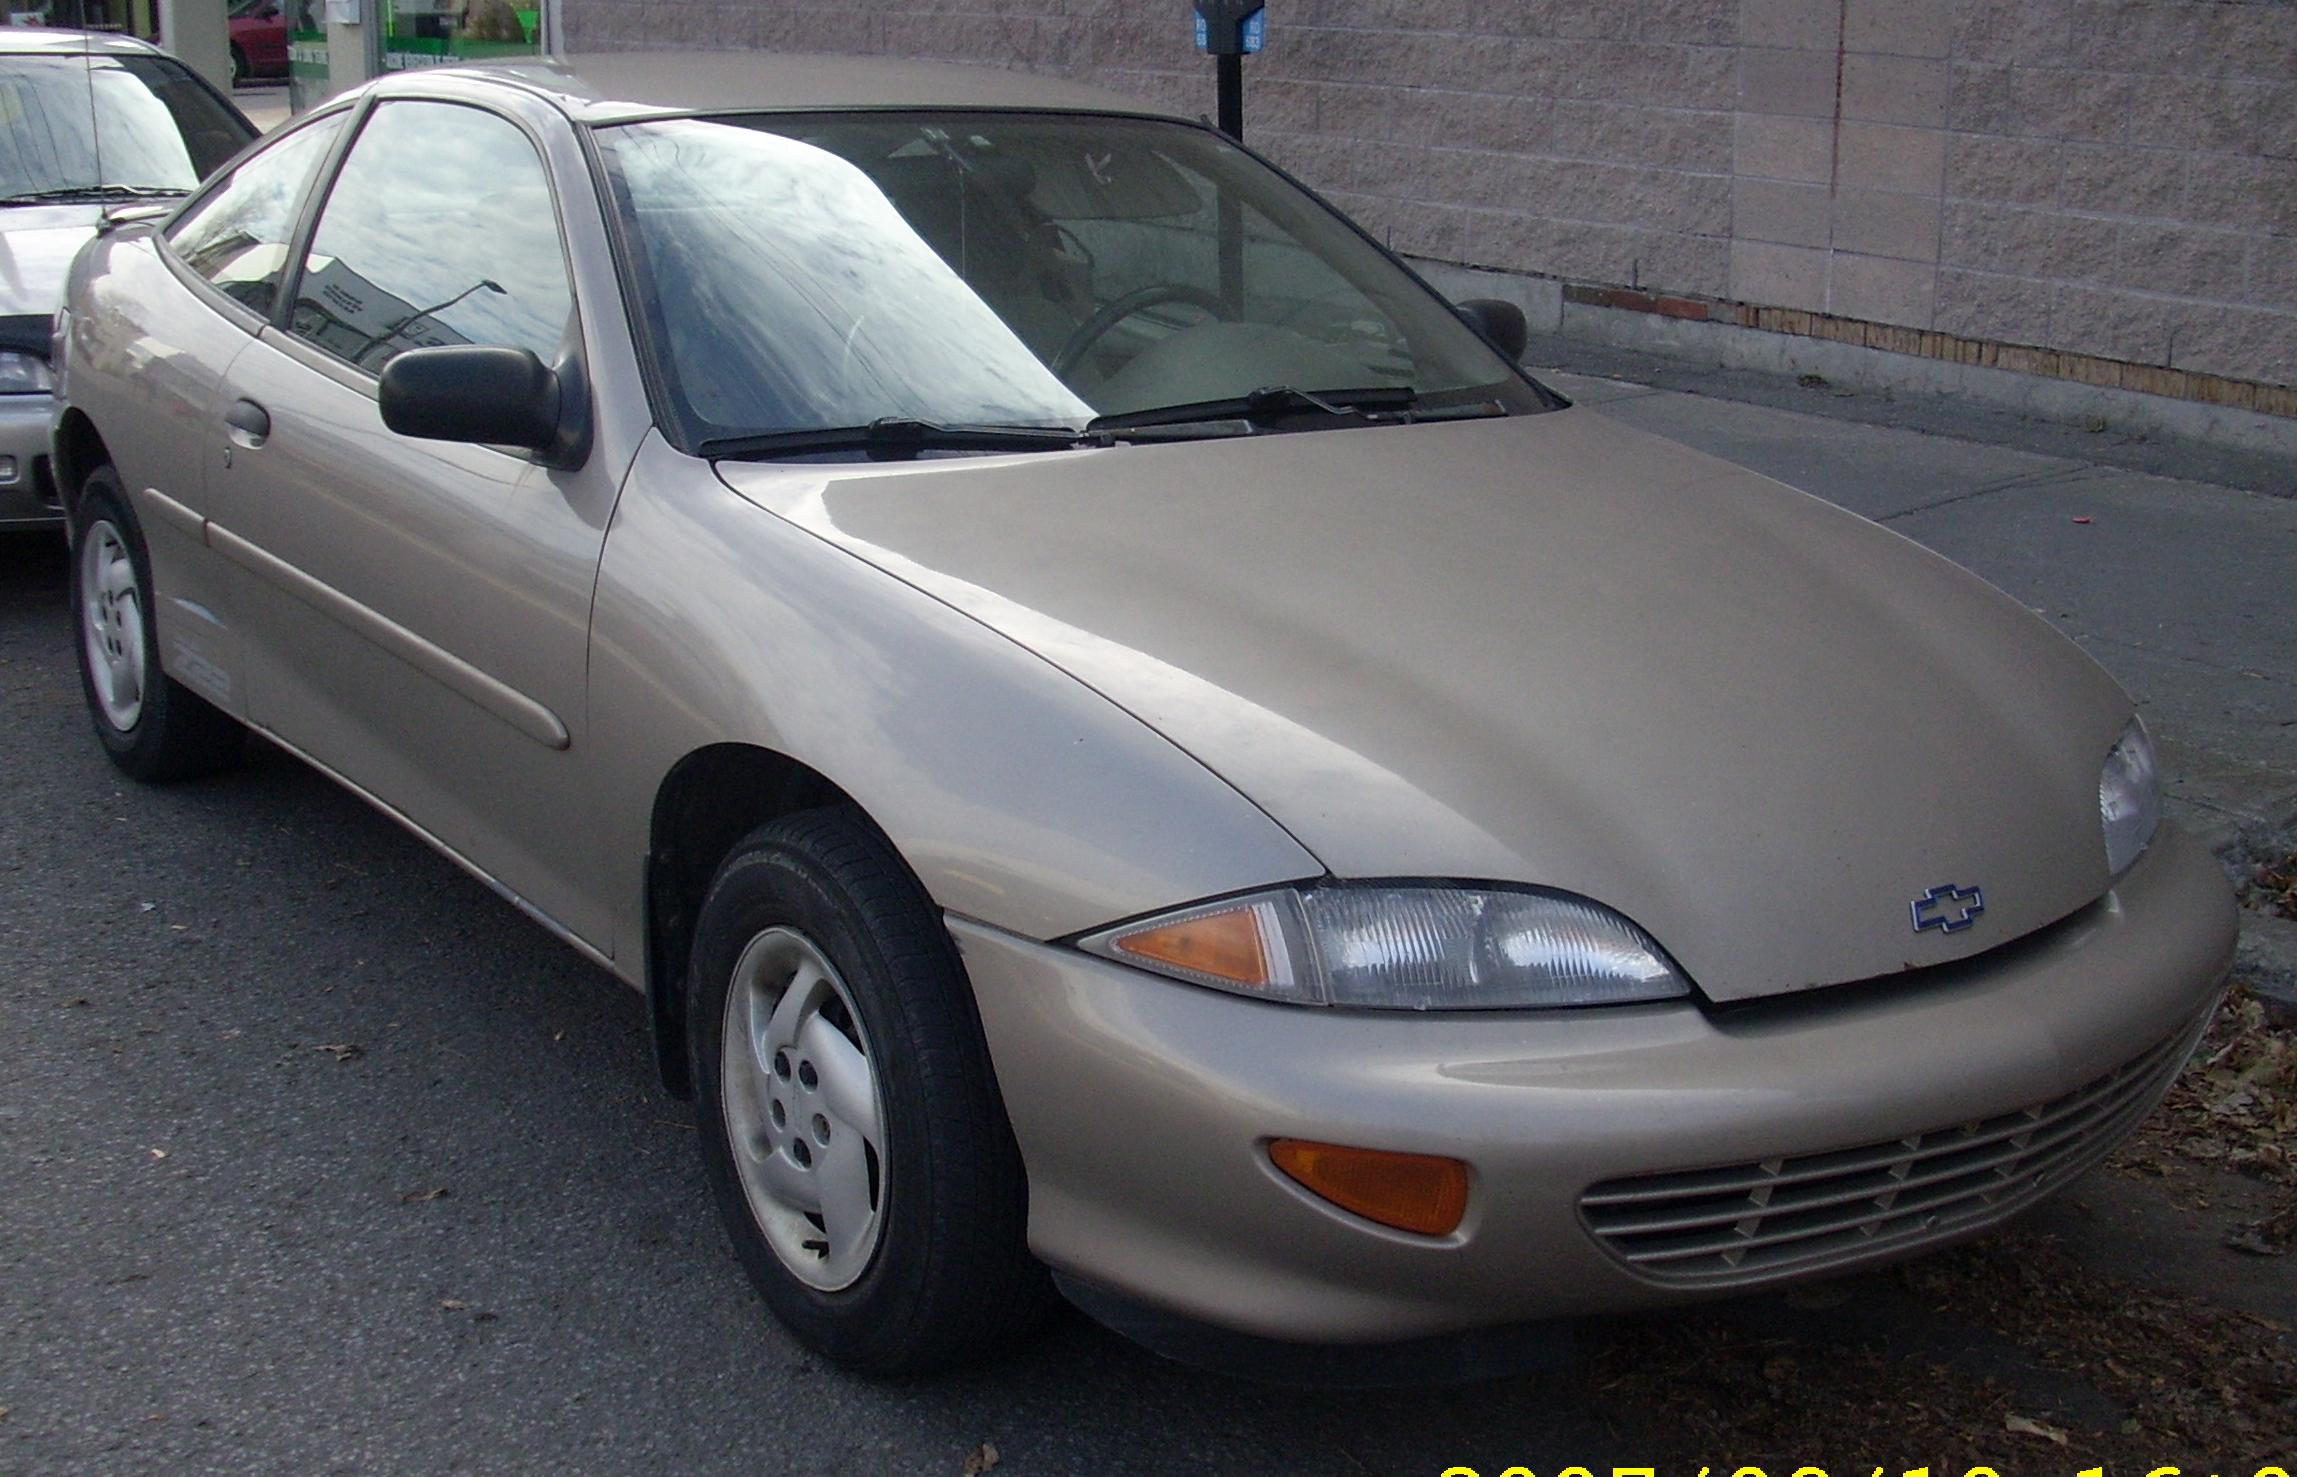 chevrolet cavalier coupe (j) 1995 images #7